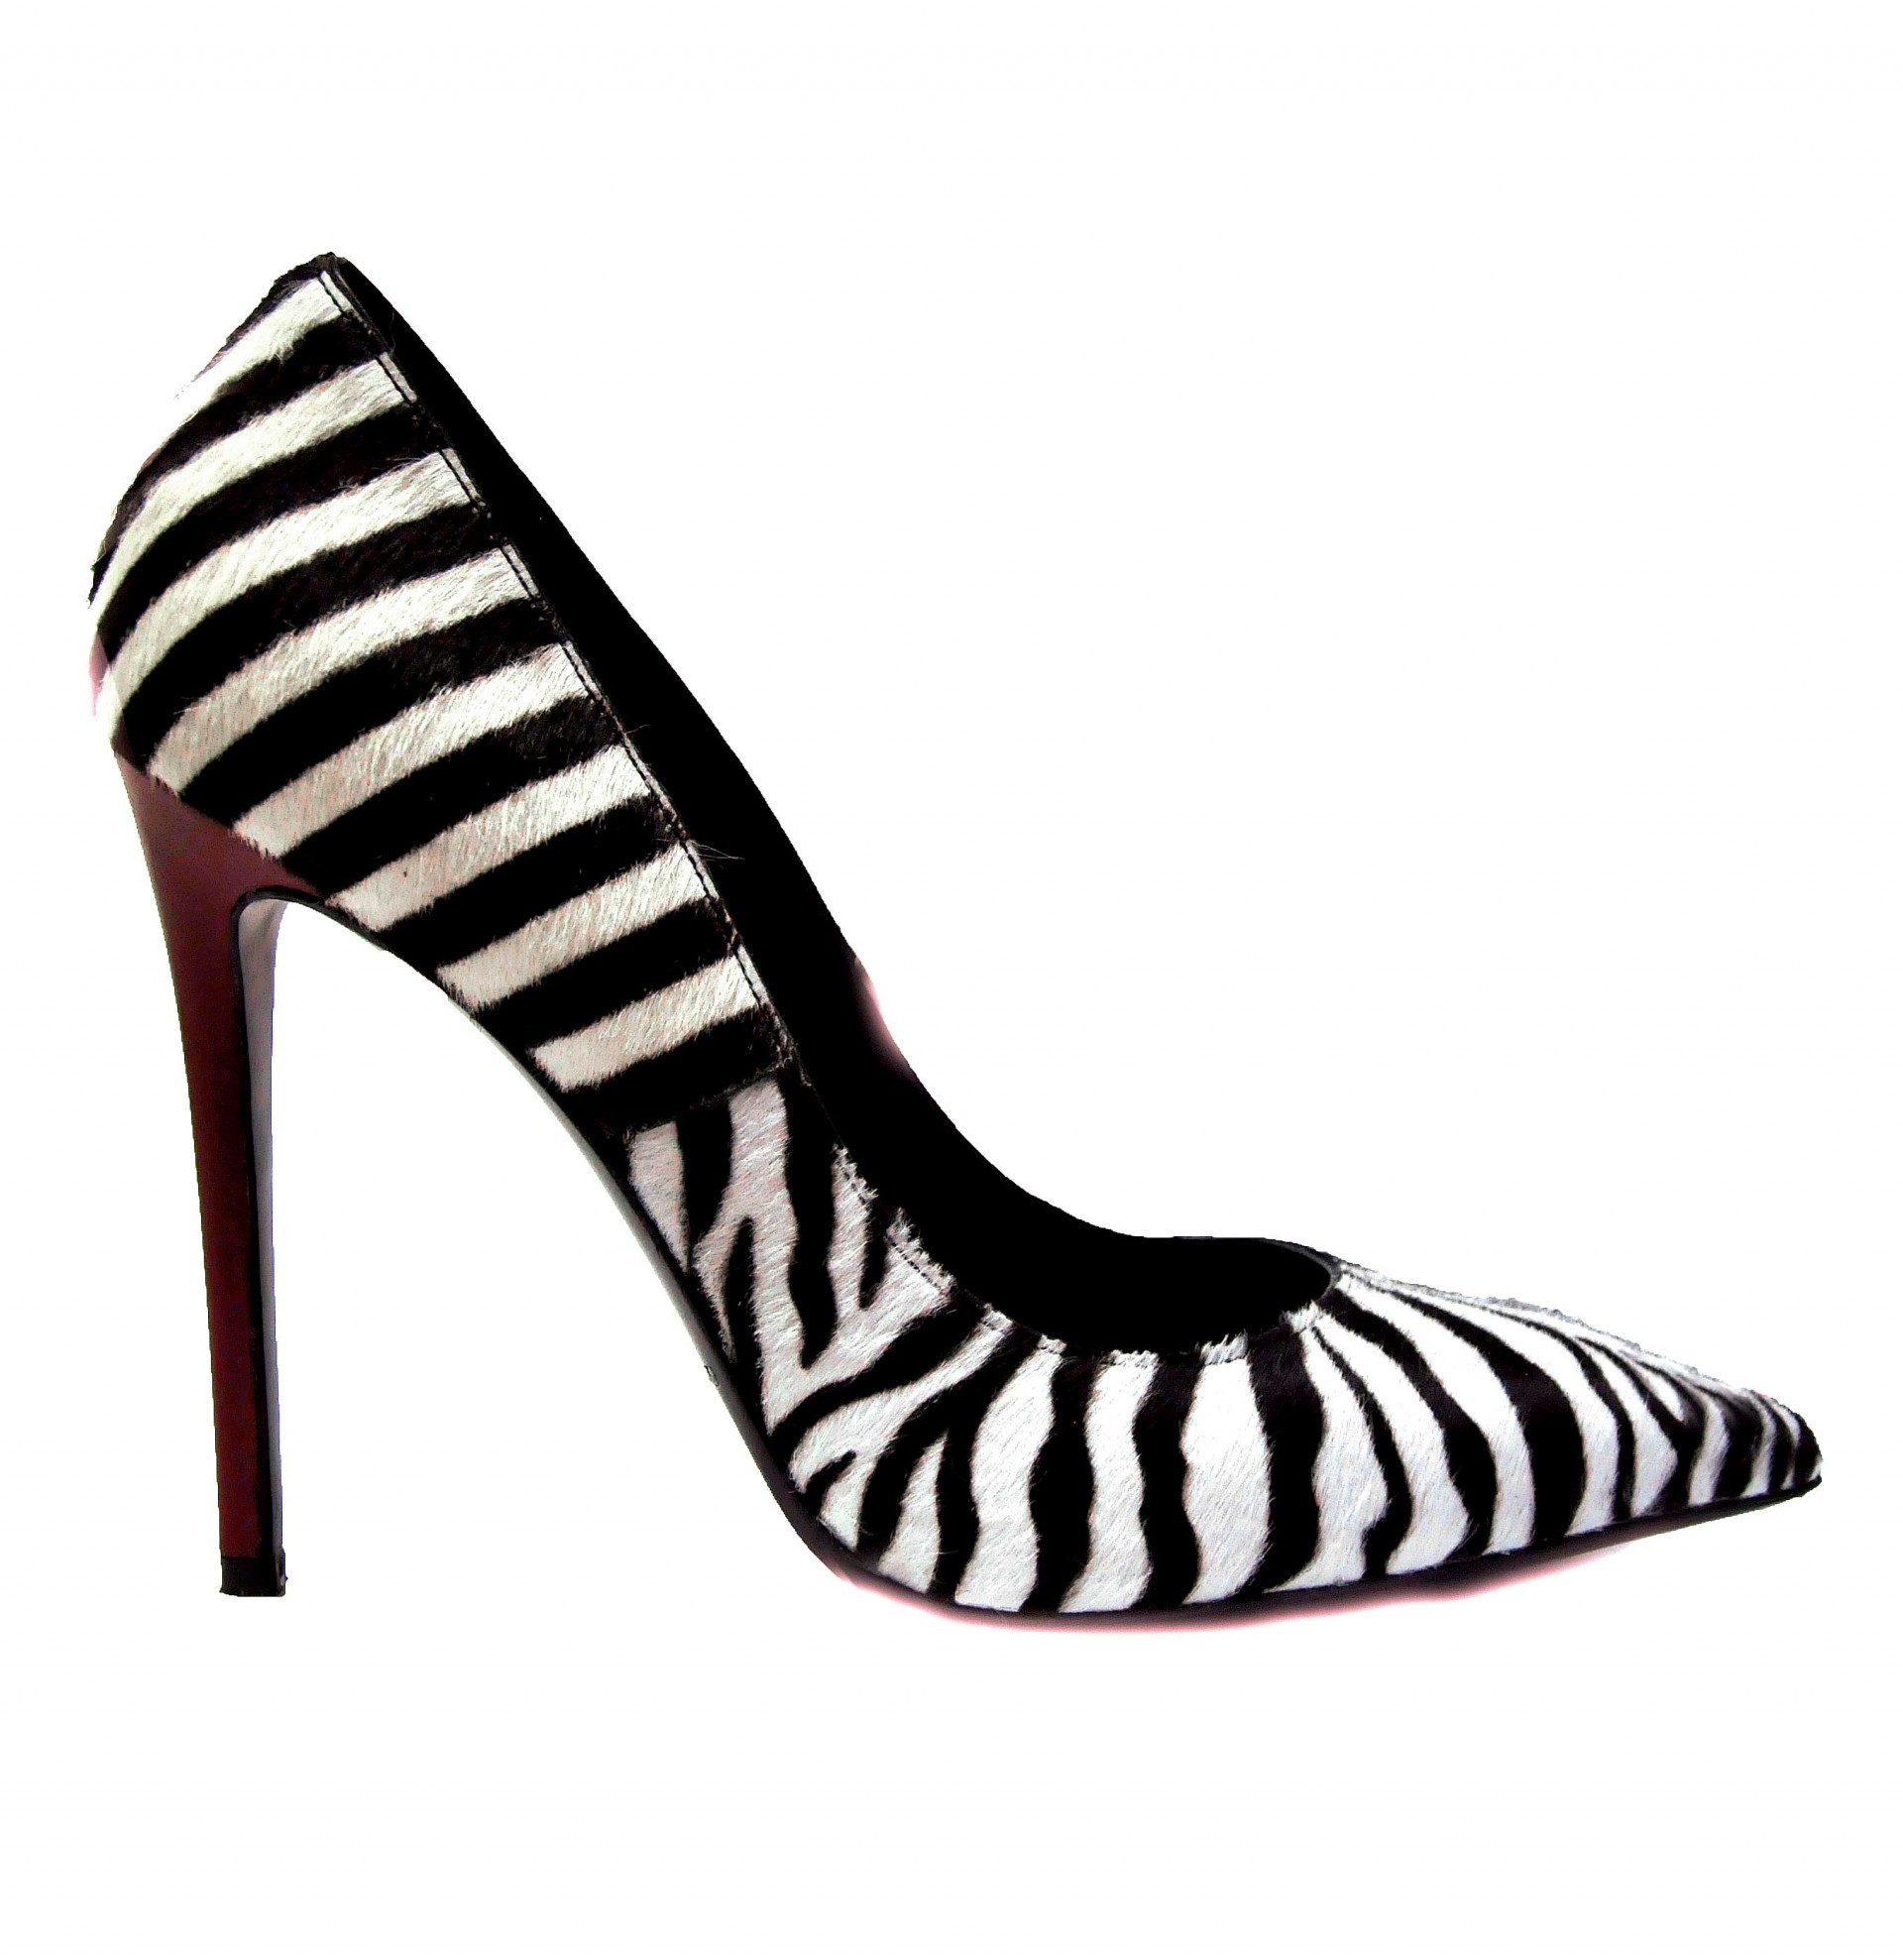 Shoes, £375, Gianmarco Lorenzi.  http://www.gianmarcolorenzi.com/shop/index.php?id_product=119&controller=product